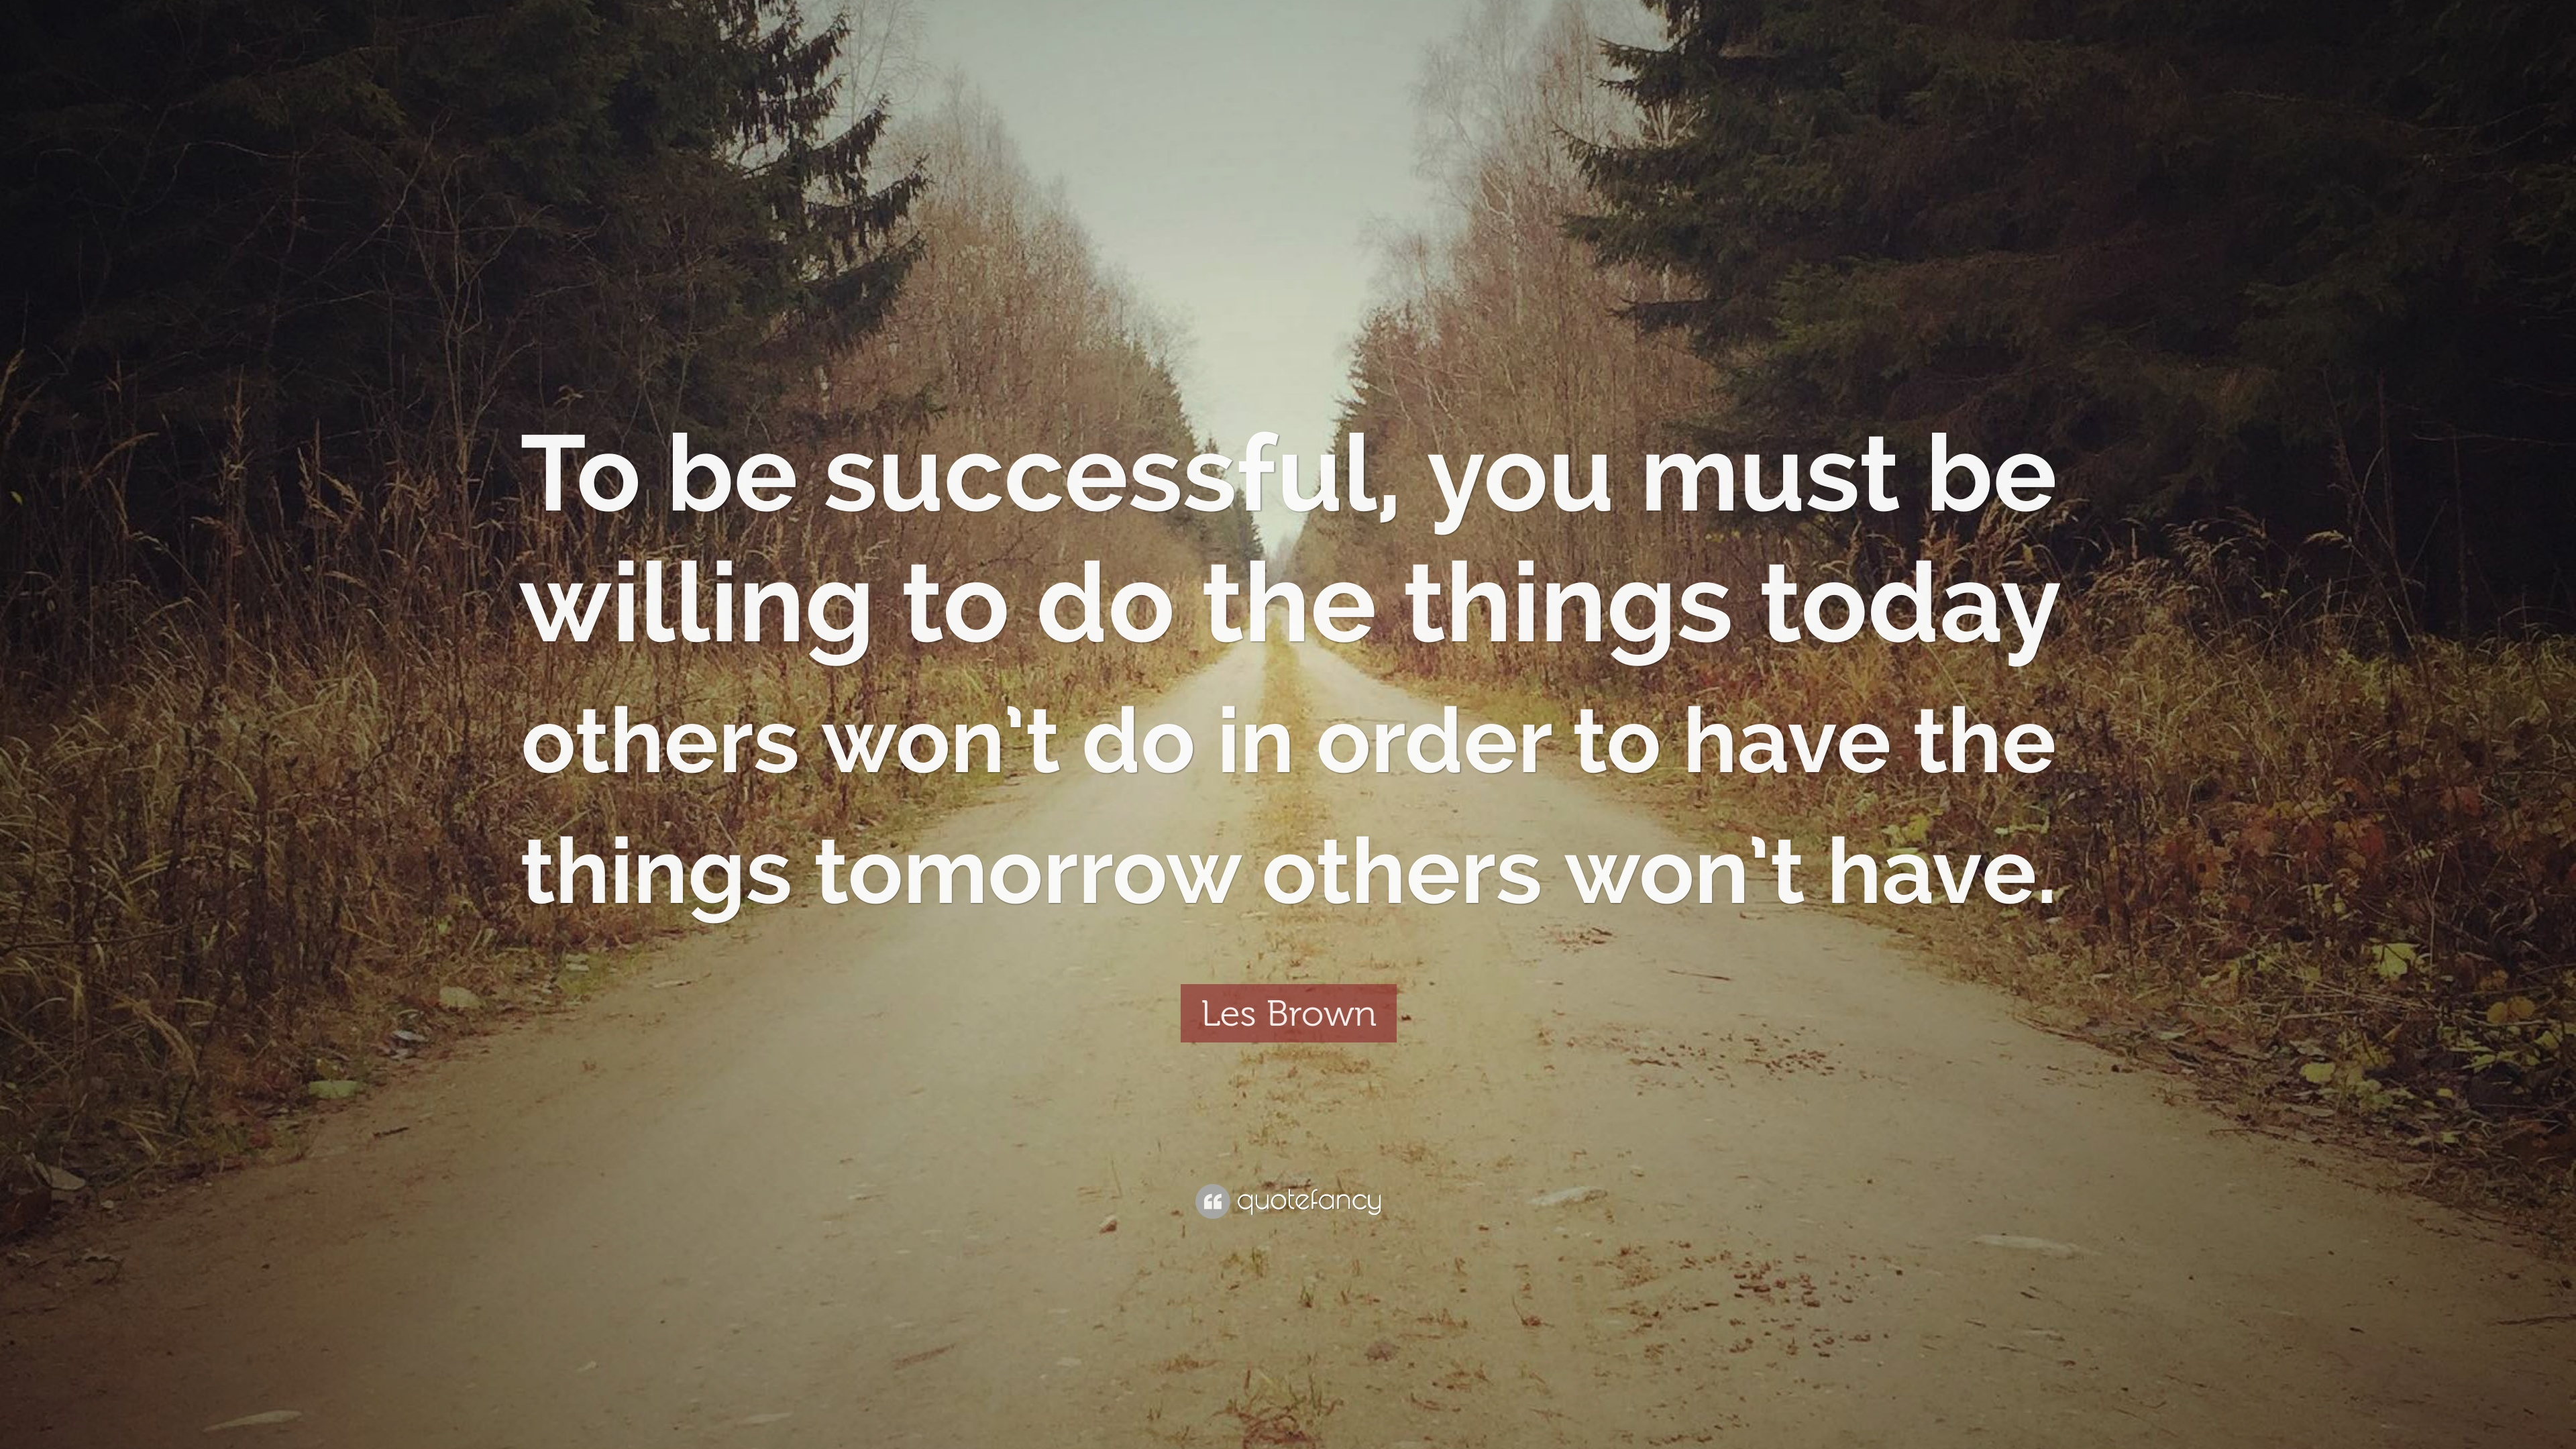 64331-Les-Brown-Quote-To-be-successful-you-must-be-willing-to-do-the